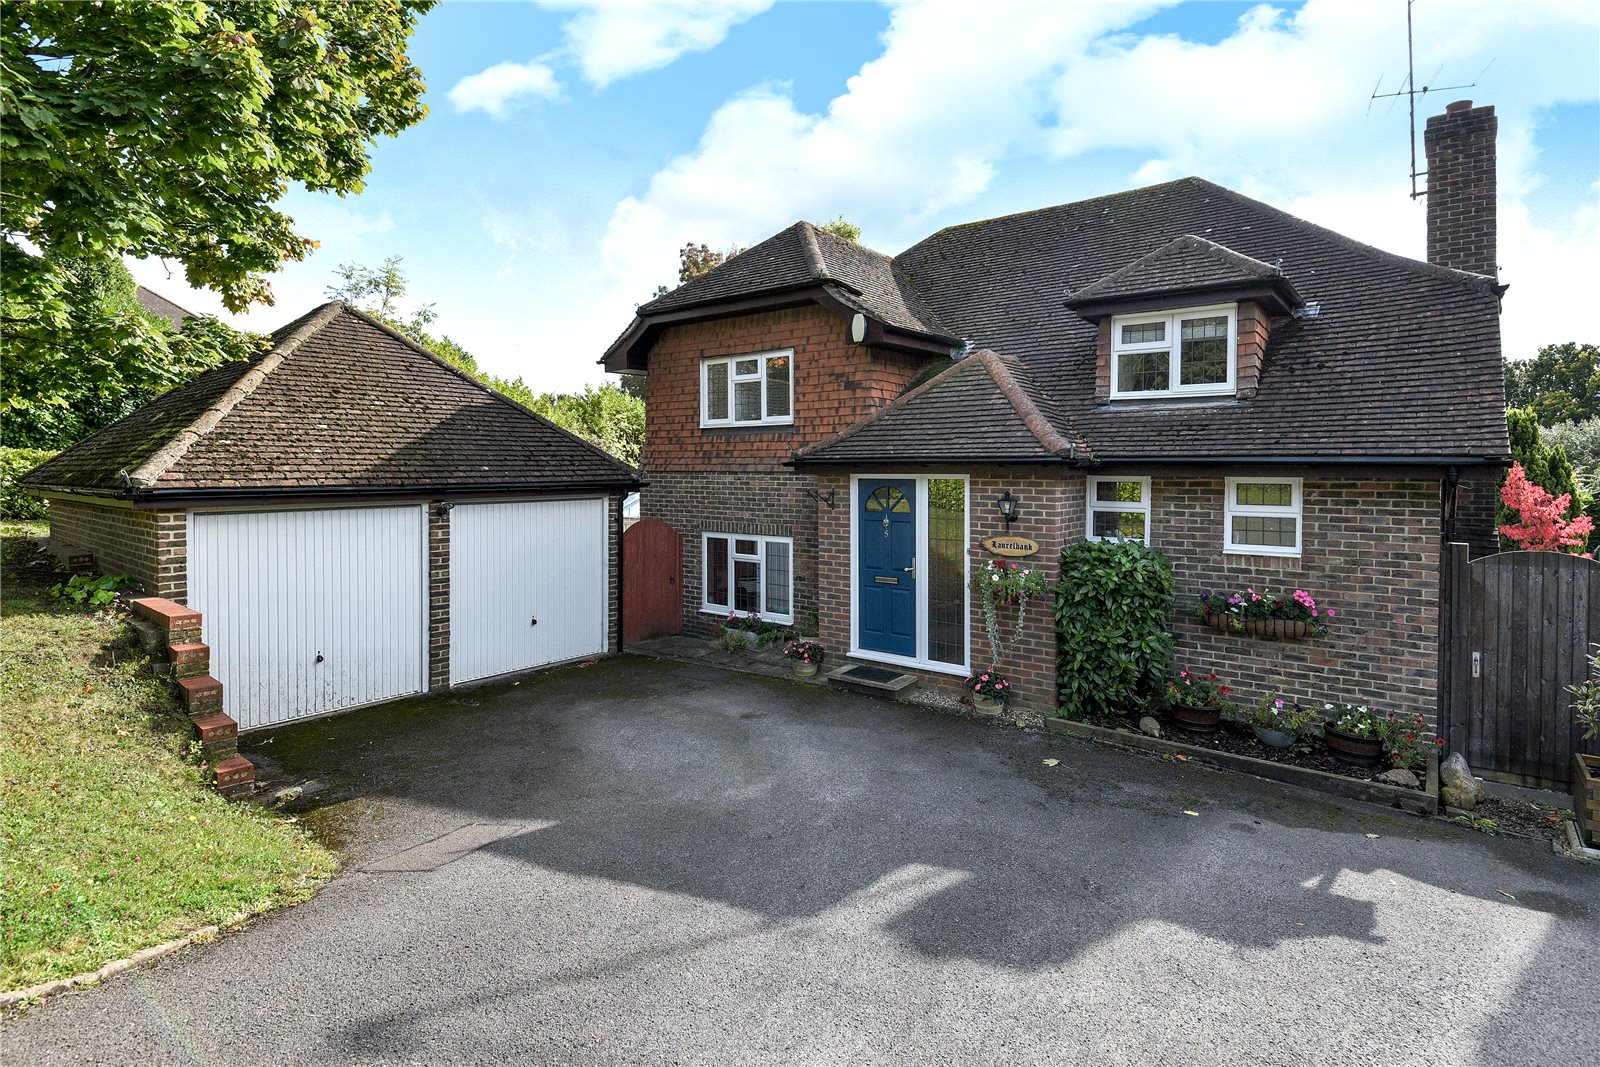 4 Bedrooms Detached House for sale in Ryhill Way, Lower Earley, Reading, Berkshire, RG6